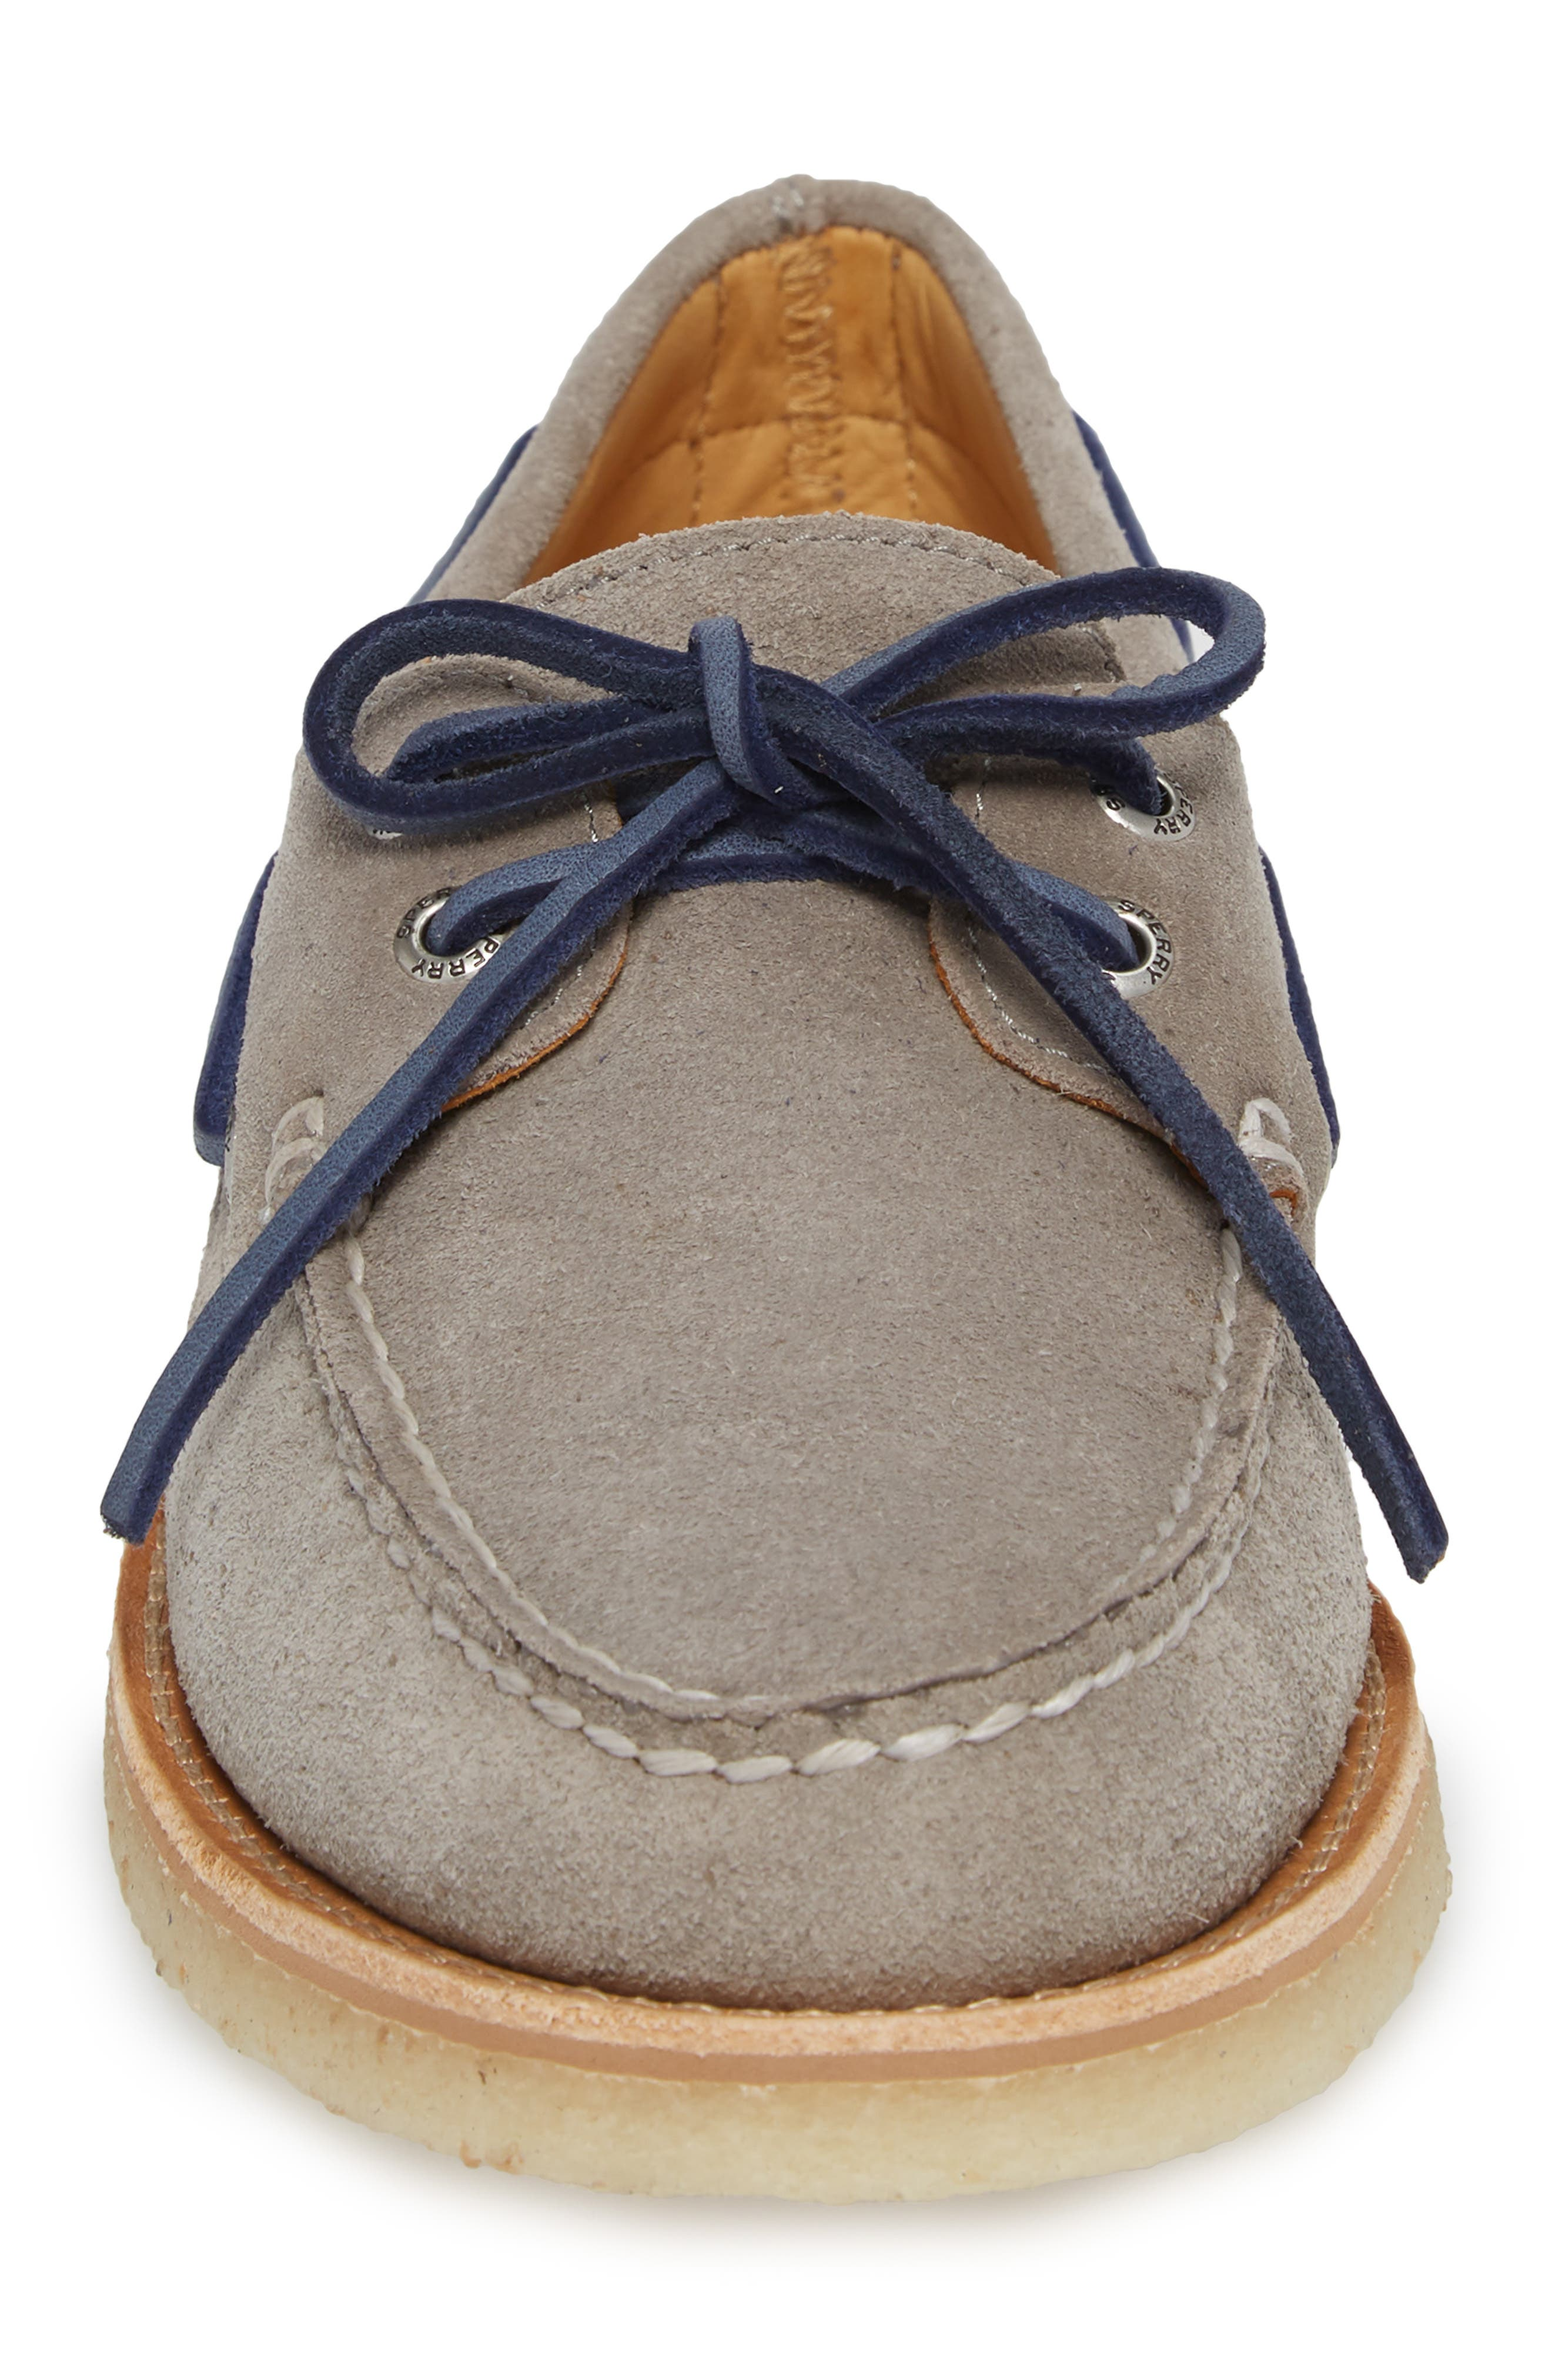 Gold Cup AO 2-Eye Boat Shoe,                             Alternate thumbnail 4, color,                             Grey Leather